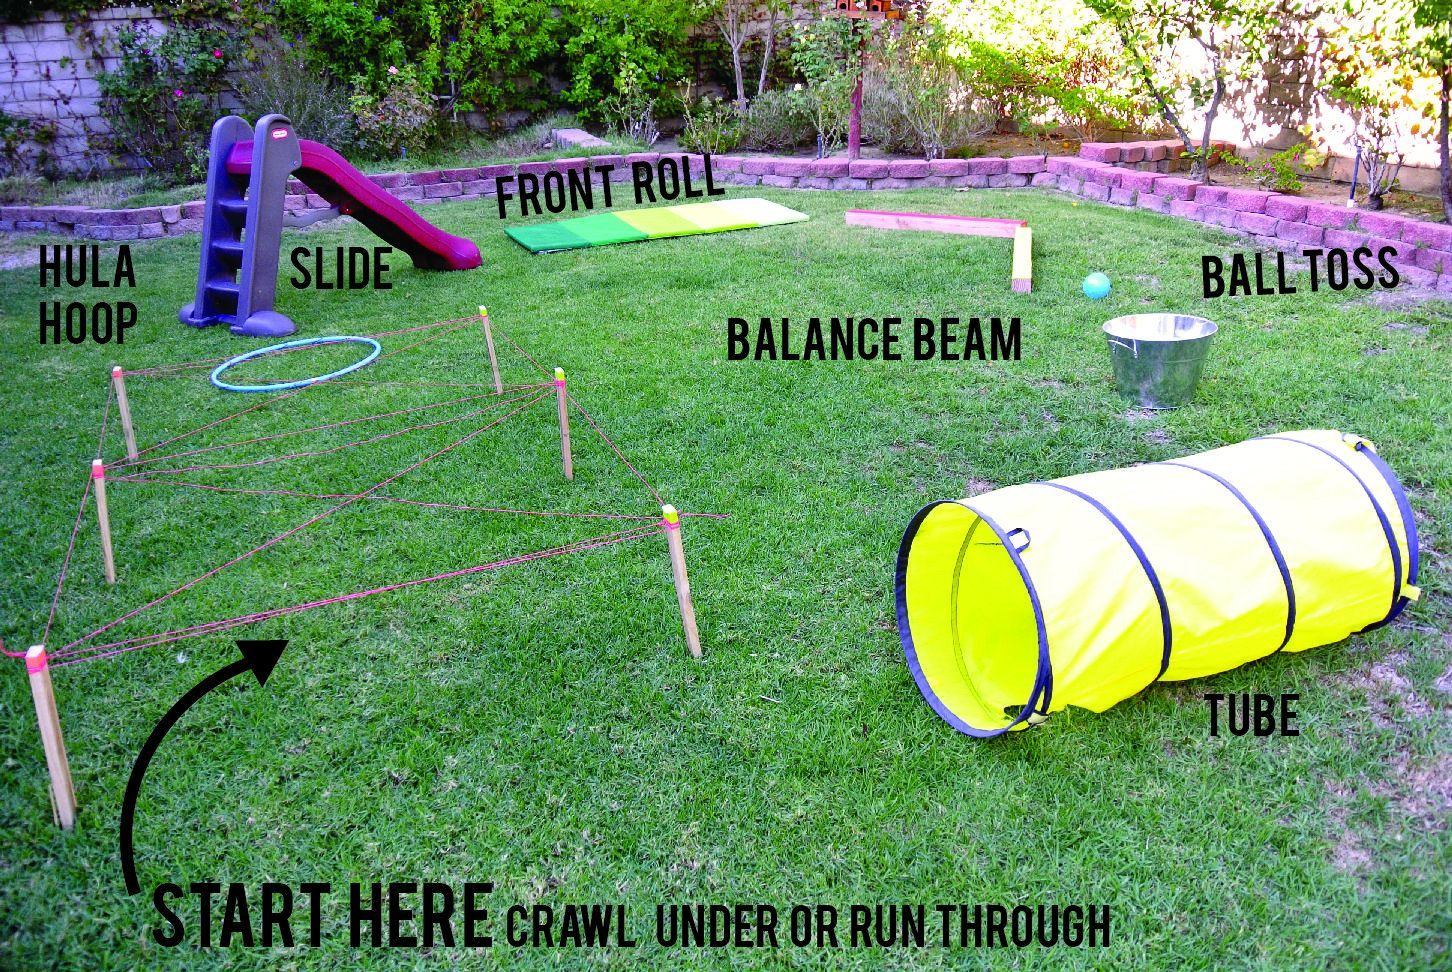 30 Genius Tricks Of How To Upgrade Backyard Obstacle Course Ideas Simphome In 2021 Kids Obstacle Course Backyard Obstacle Course Backyard For Kids